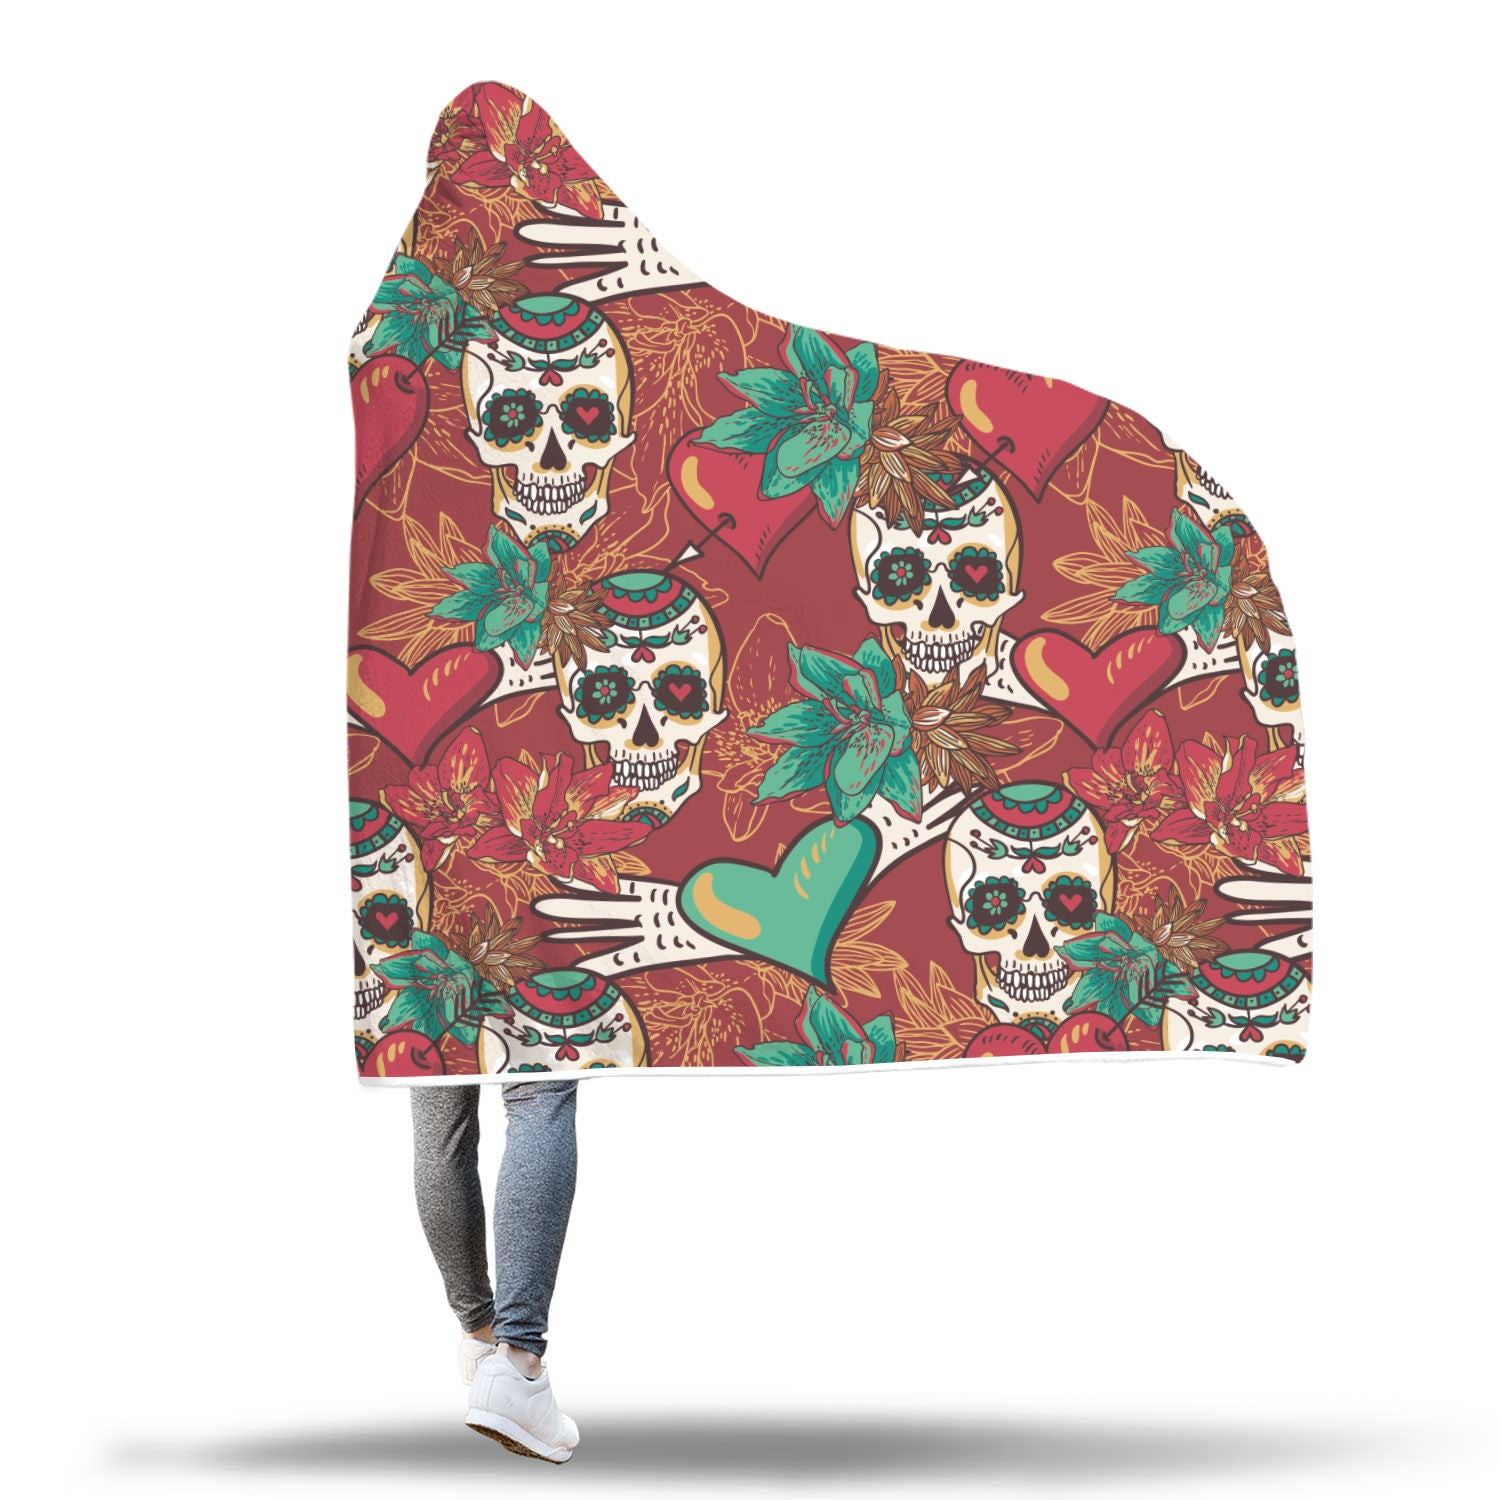 Green Hearts Skull Hooded Blanket - Hello Moa